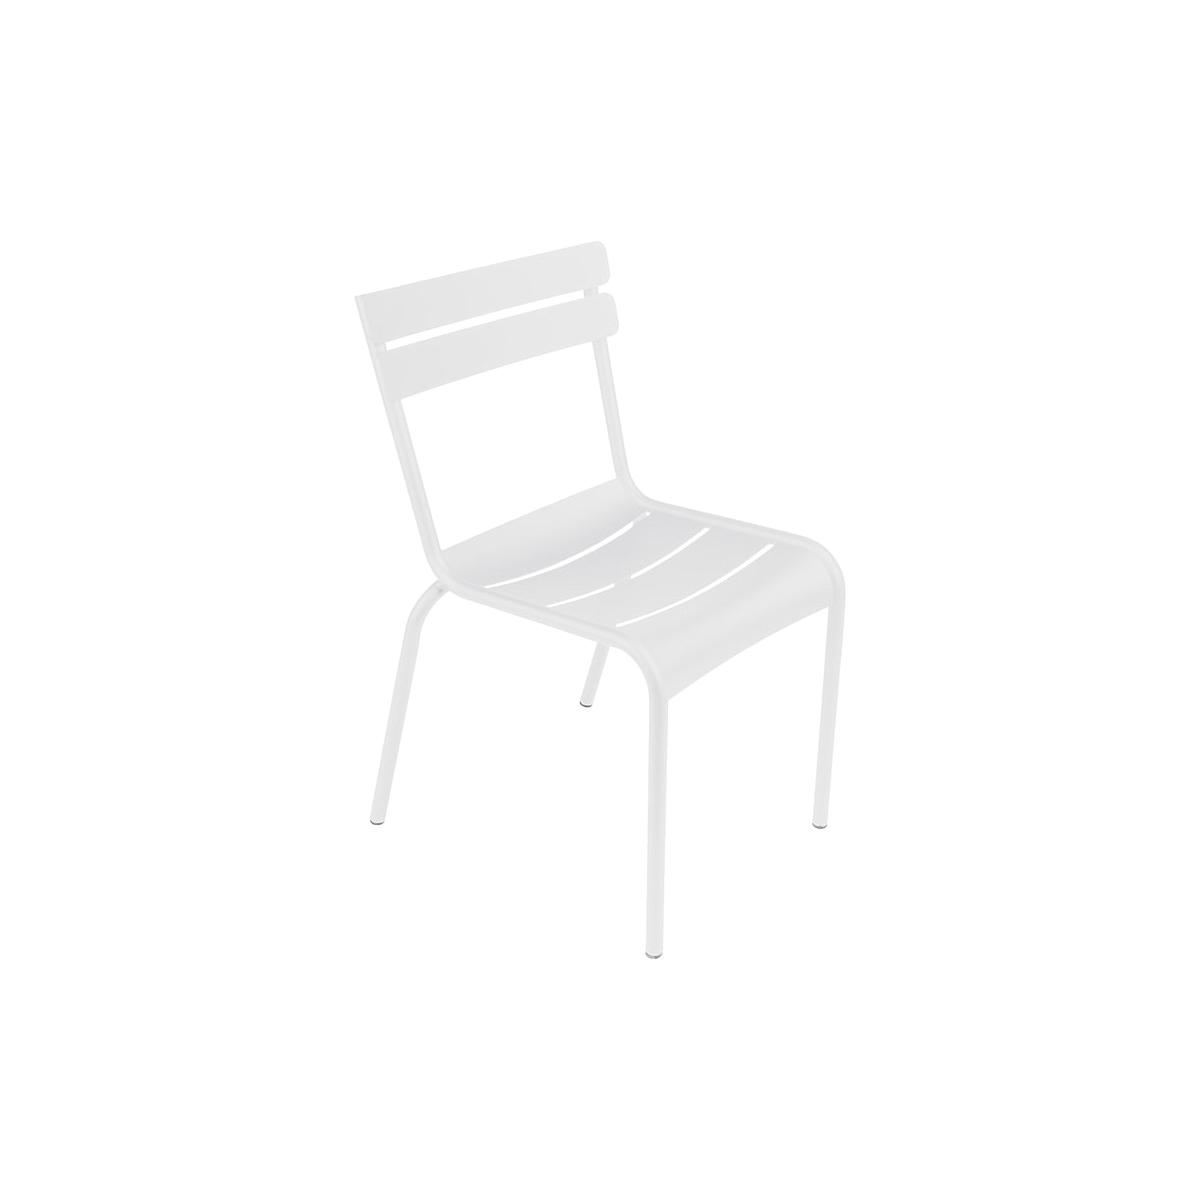 LUXEMBOURG by Fermob Chaise Blanc coton